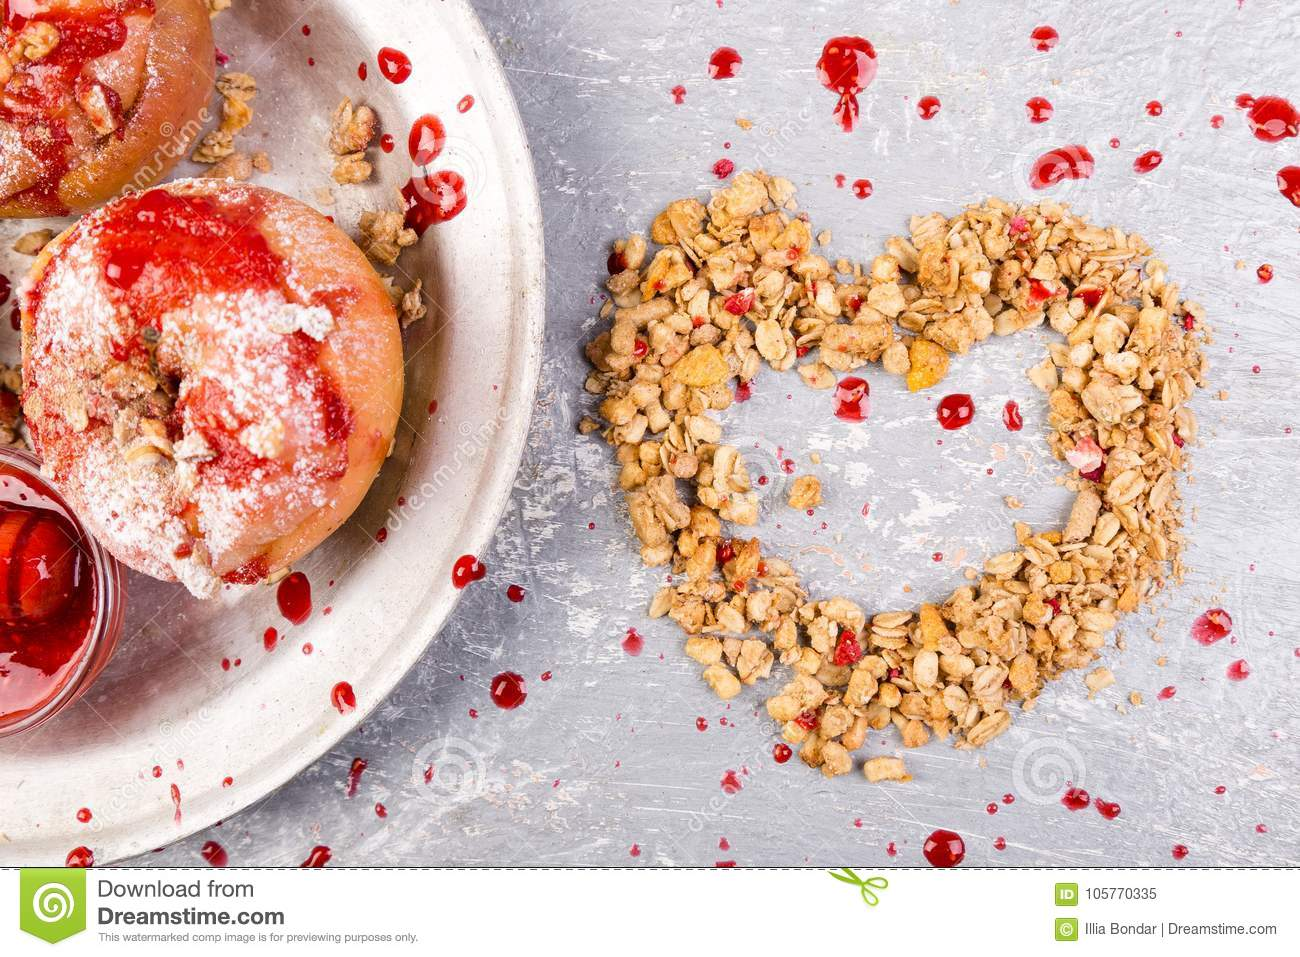 red baked apples stuffed cottage cheese and granola with jam rh dreamstime com Cottage Cheese and Weight Loss cottage cheese good diet food